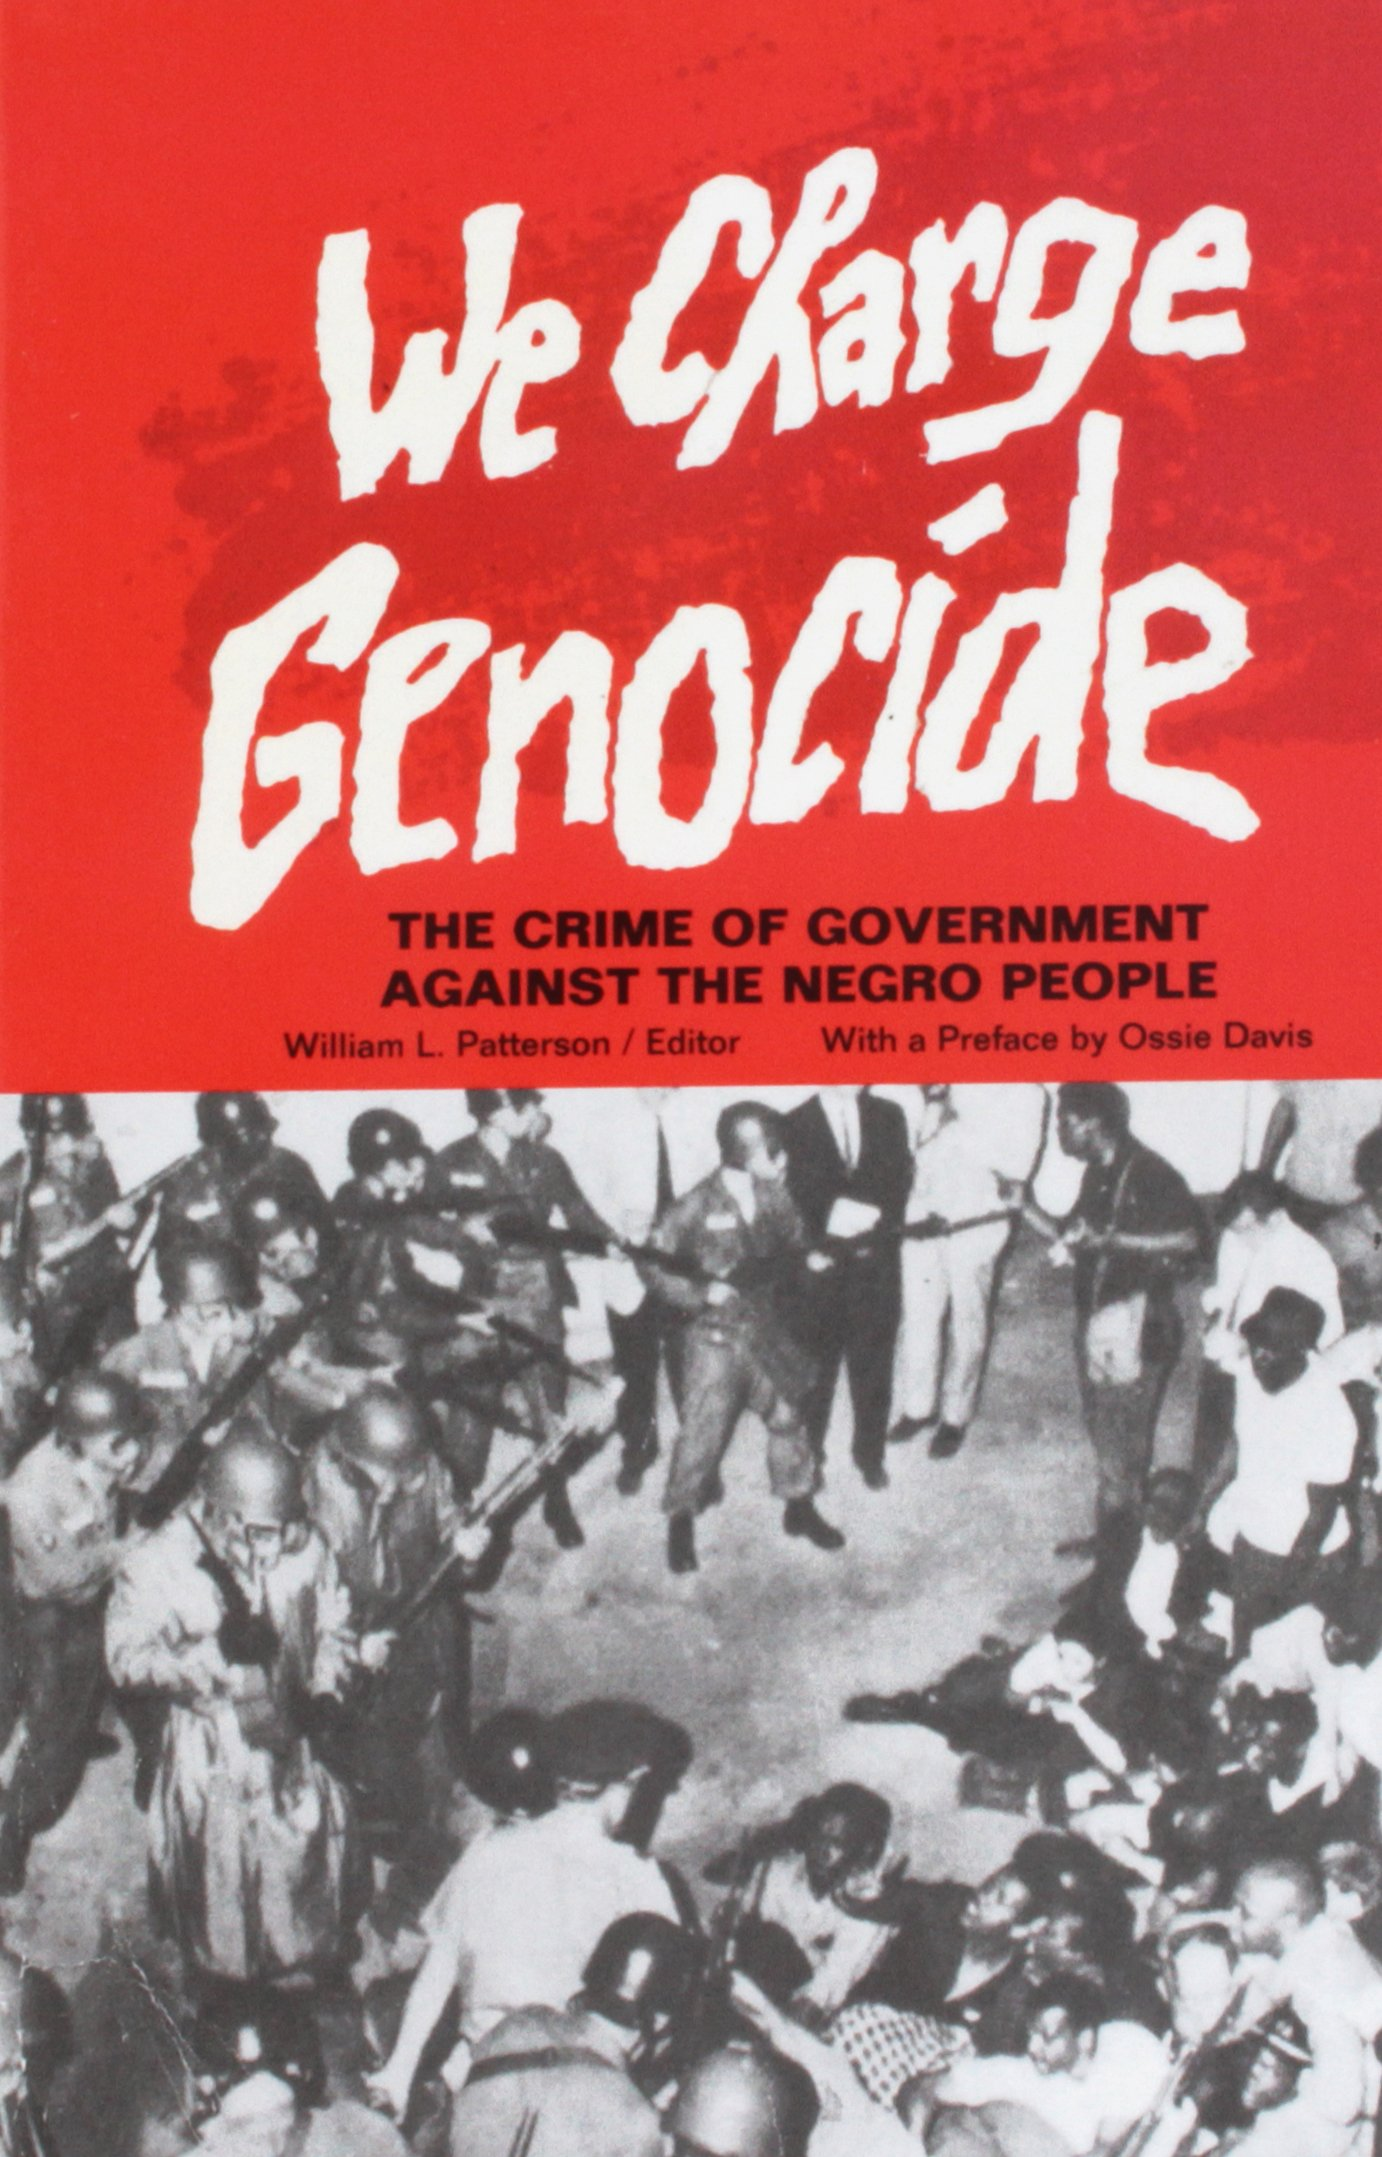 We Charge Genocide  (1951) was the first petition delivered to the United Nations to charge a UN Member State with genocide. The petition was part of a campaign led by prominent African-American intellectuals, such as William Paterson, W.E.B. Dubois, and Paul Robeson, who believed the UN Genocide Convention could be used to motivate international action to prevent lynching and other crimes against Black Americans that were committed by, or sanctioned by, local, state, and federal governments in the United States ( google it ).